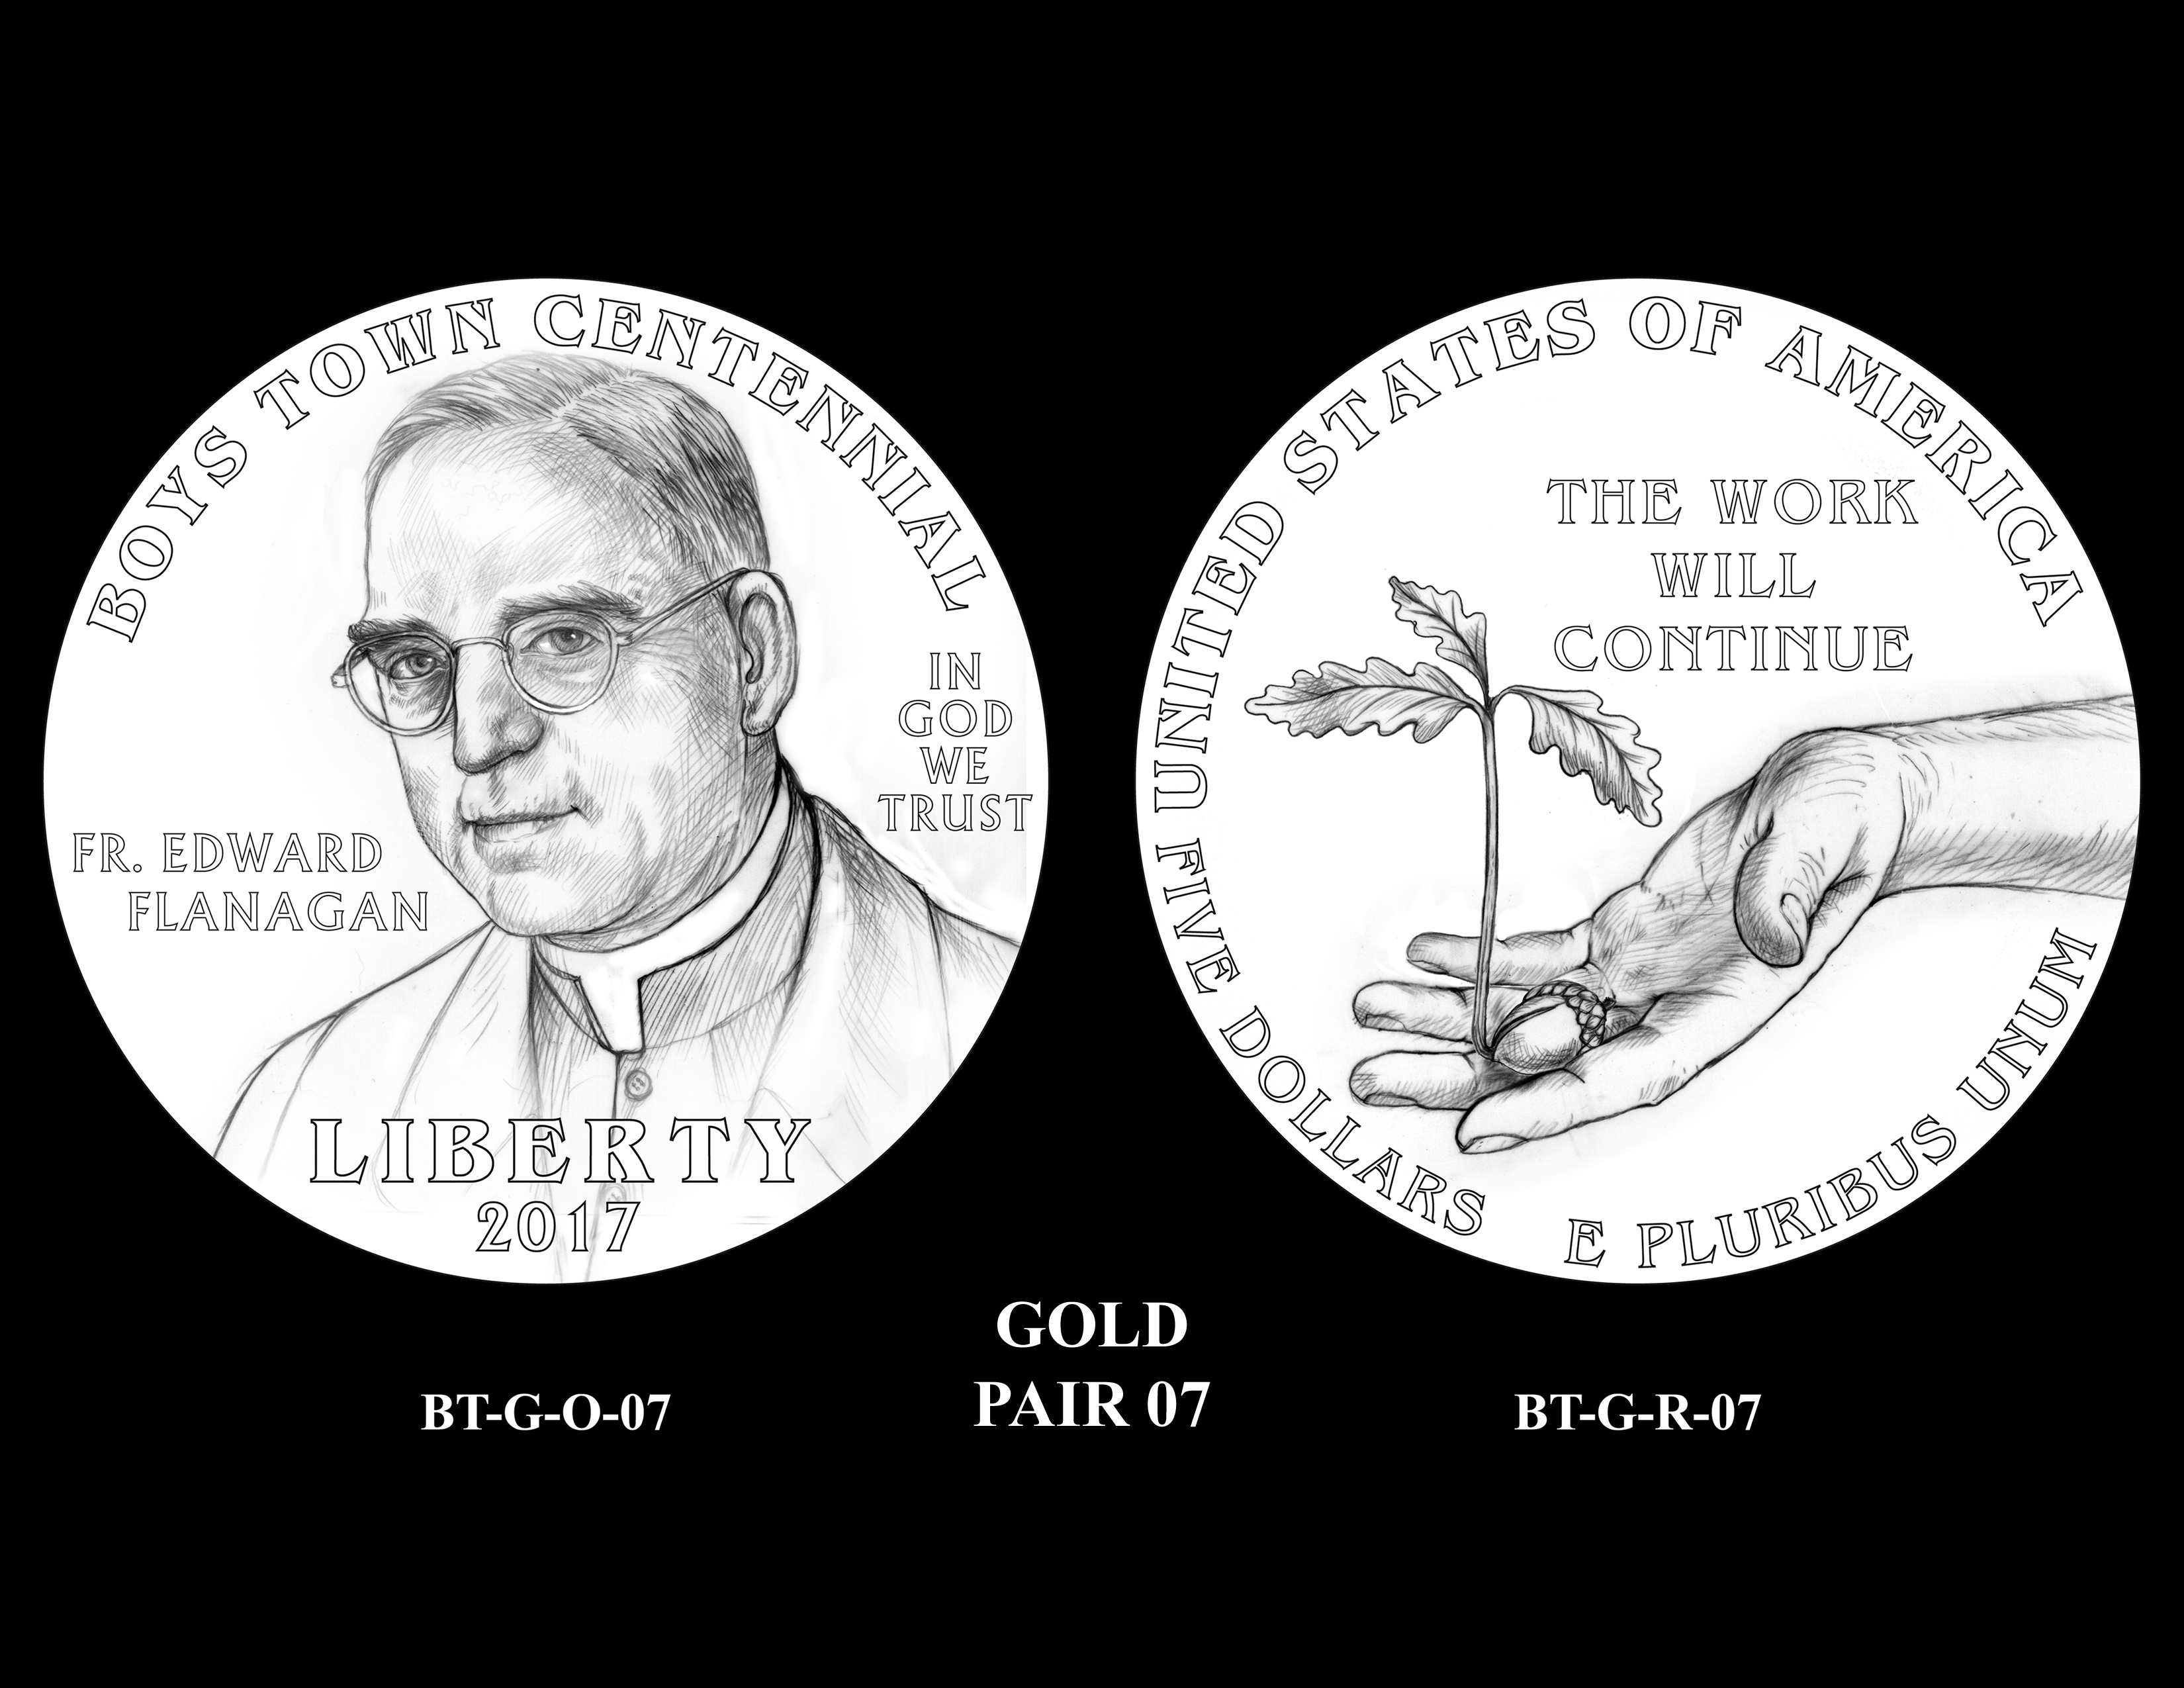 Gold-Pair-07 -- 2017 Boystown Centennial Commemorative Coin  Program